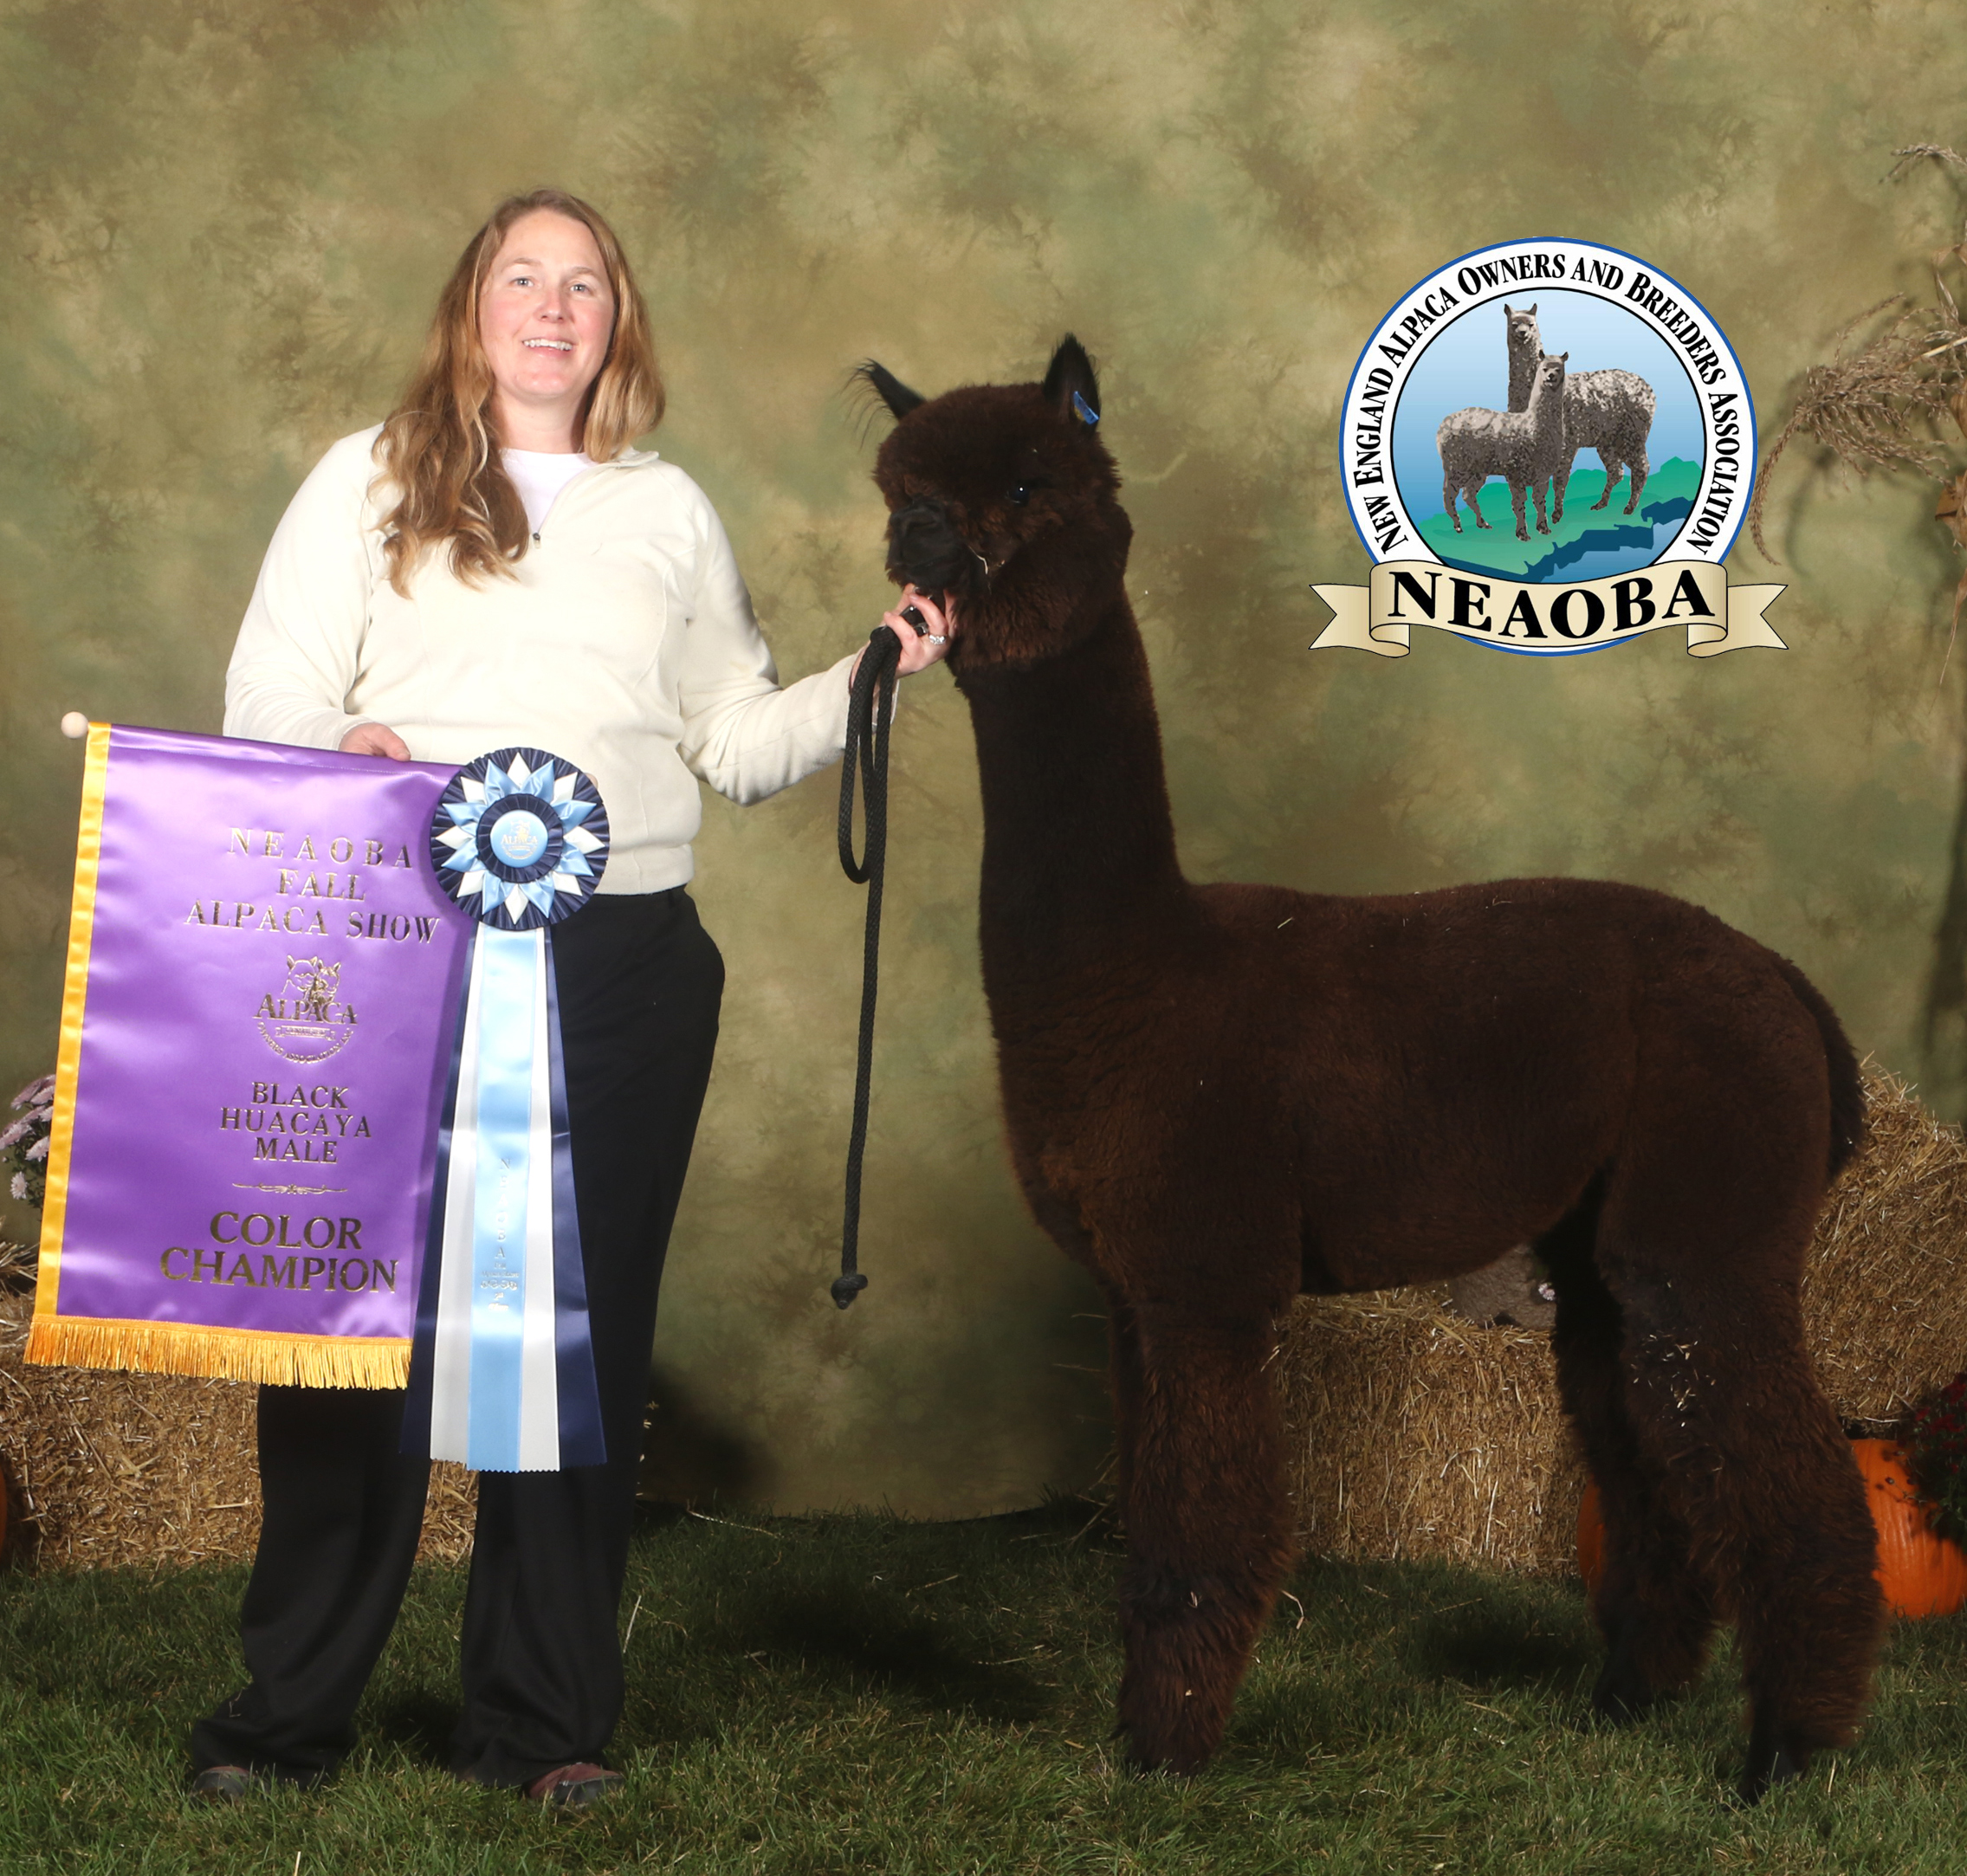 CCNF Skyhawk winning his 3rd Black Color Championship (and 5th banner overall) at the recently held NEAOBA Fall Alpaca Show in Syracuse, NY.